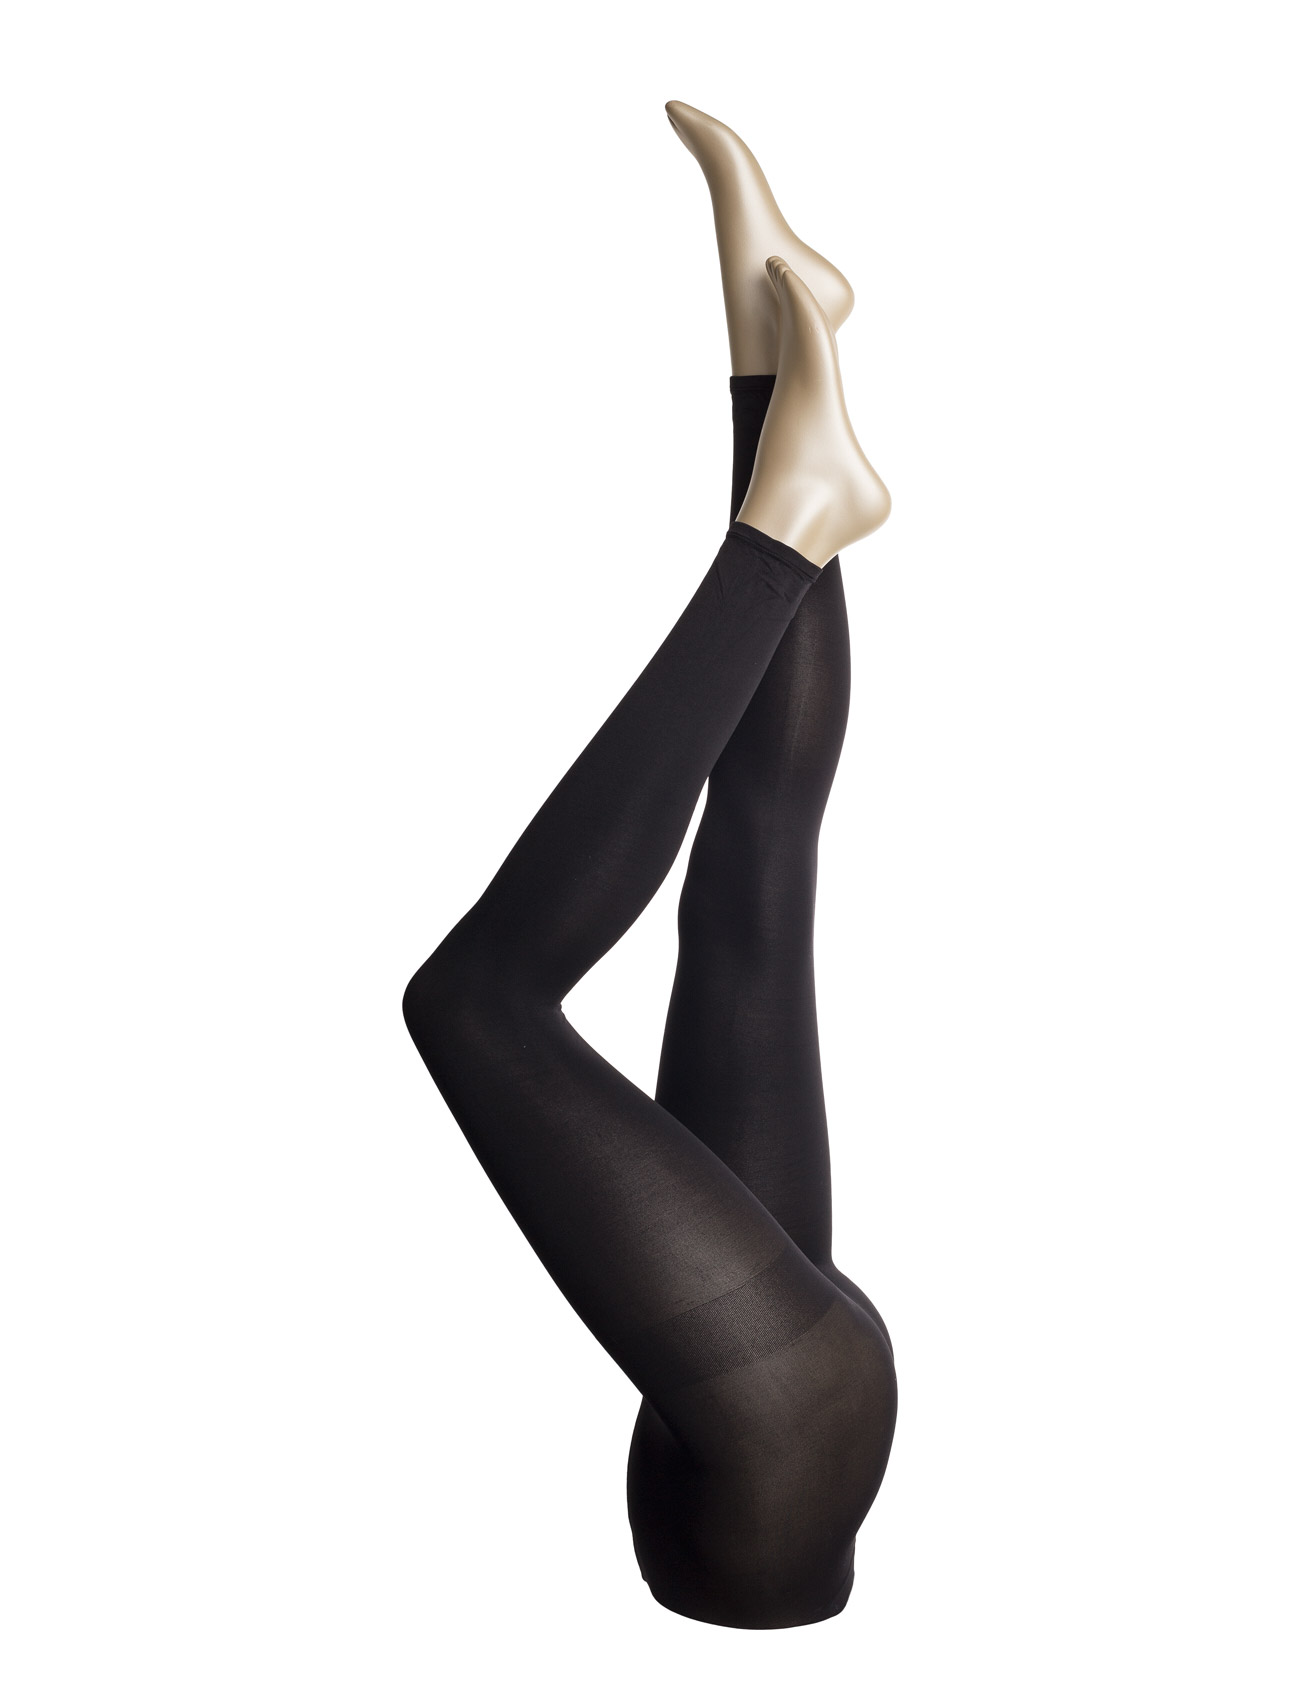 Ladies Den Leggings, Opaque Leggings 3d 80den thumbnail